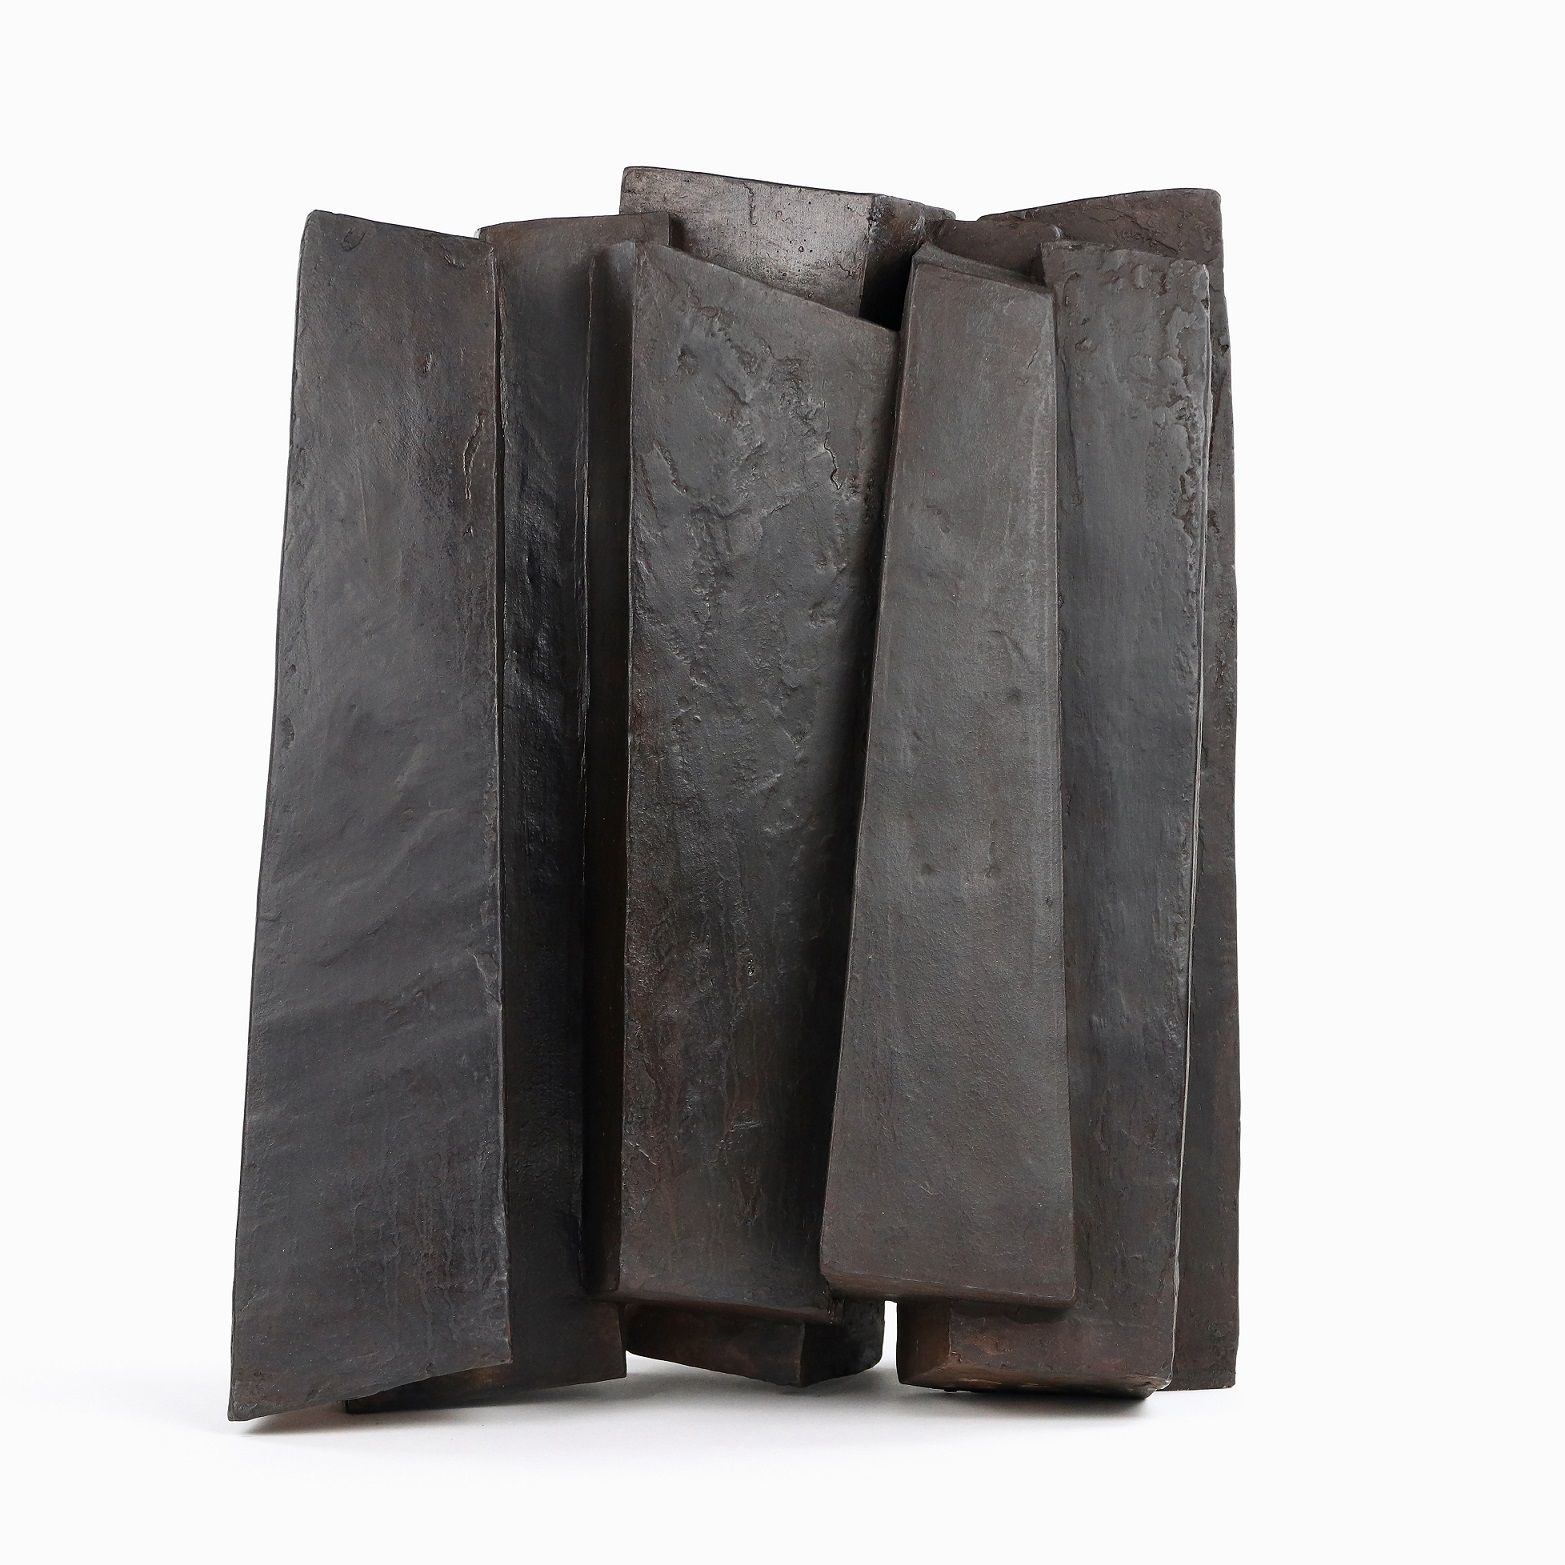 Ensemble II, série Sillon,Delphine Brabant,Sculpture contemporaine